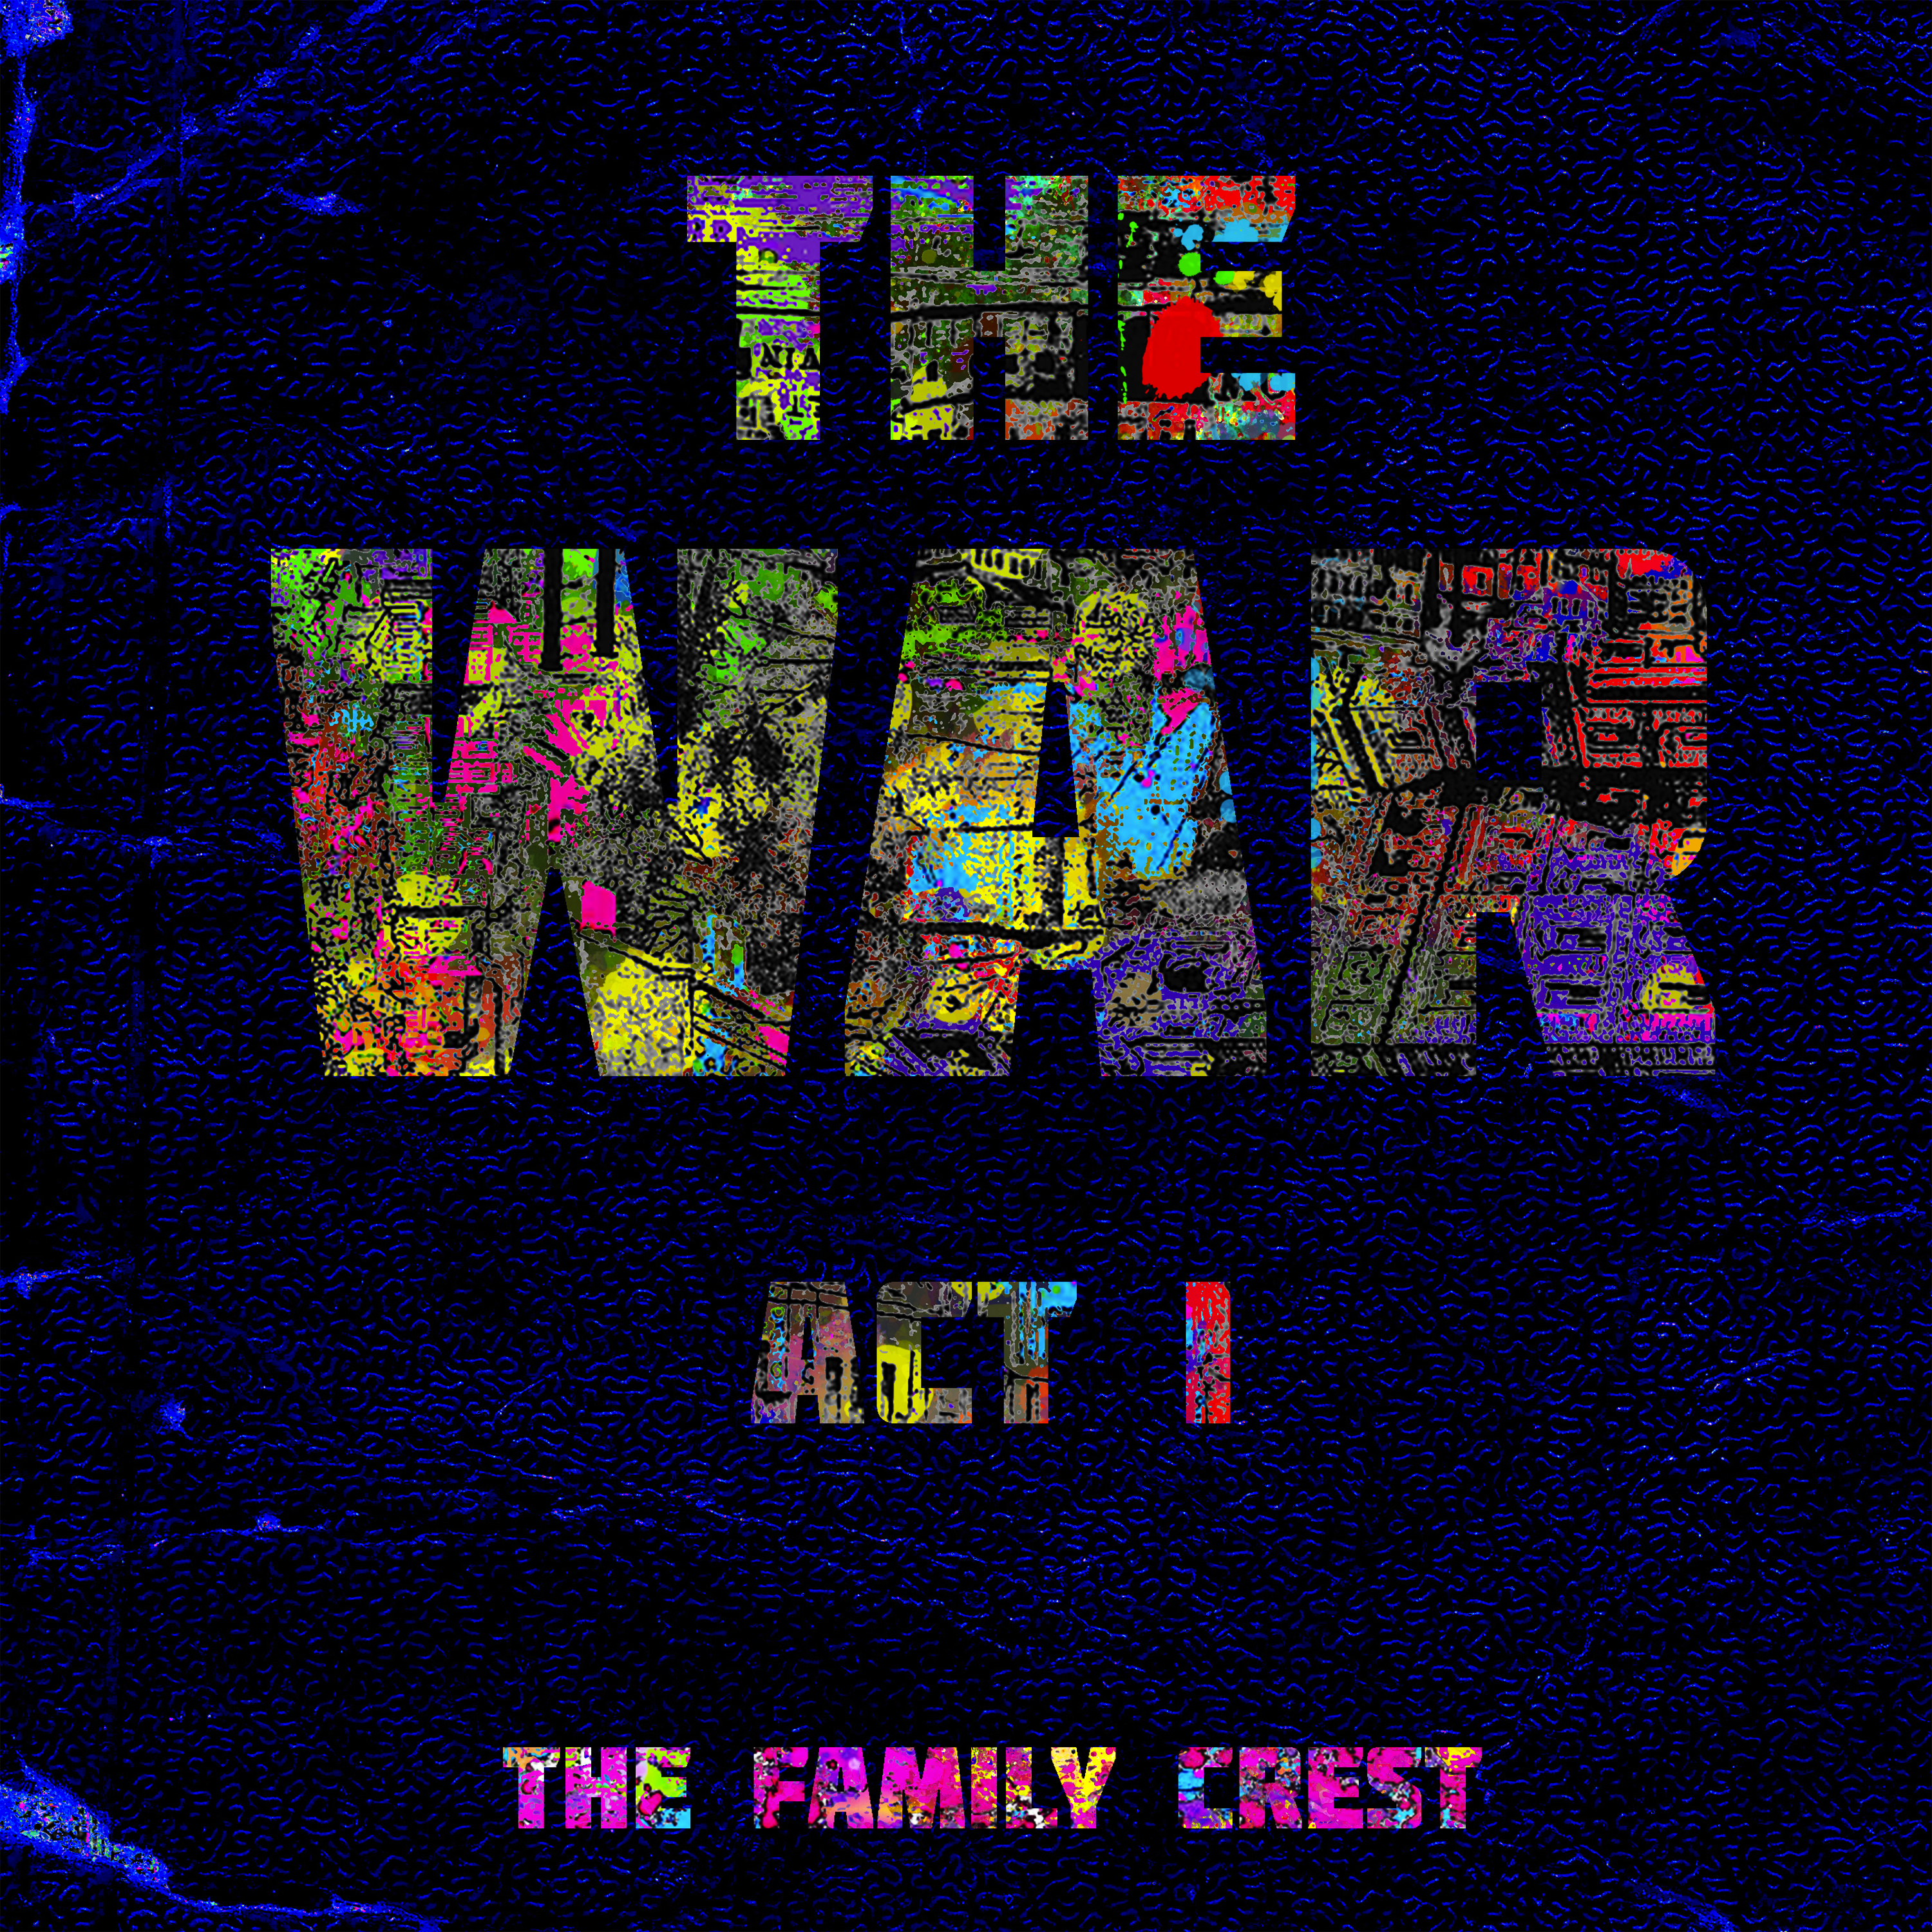 The Family Crest - The War Presale Store